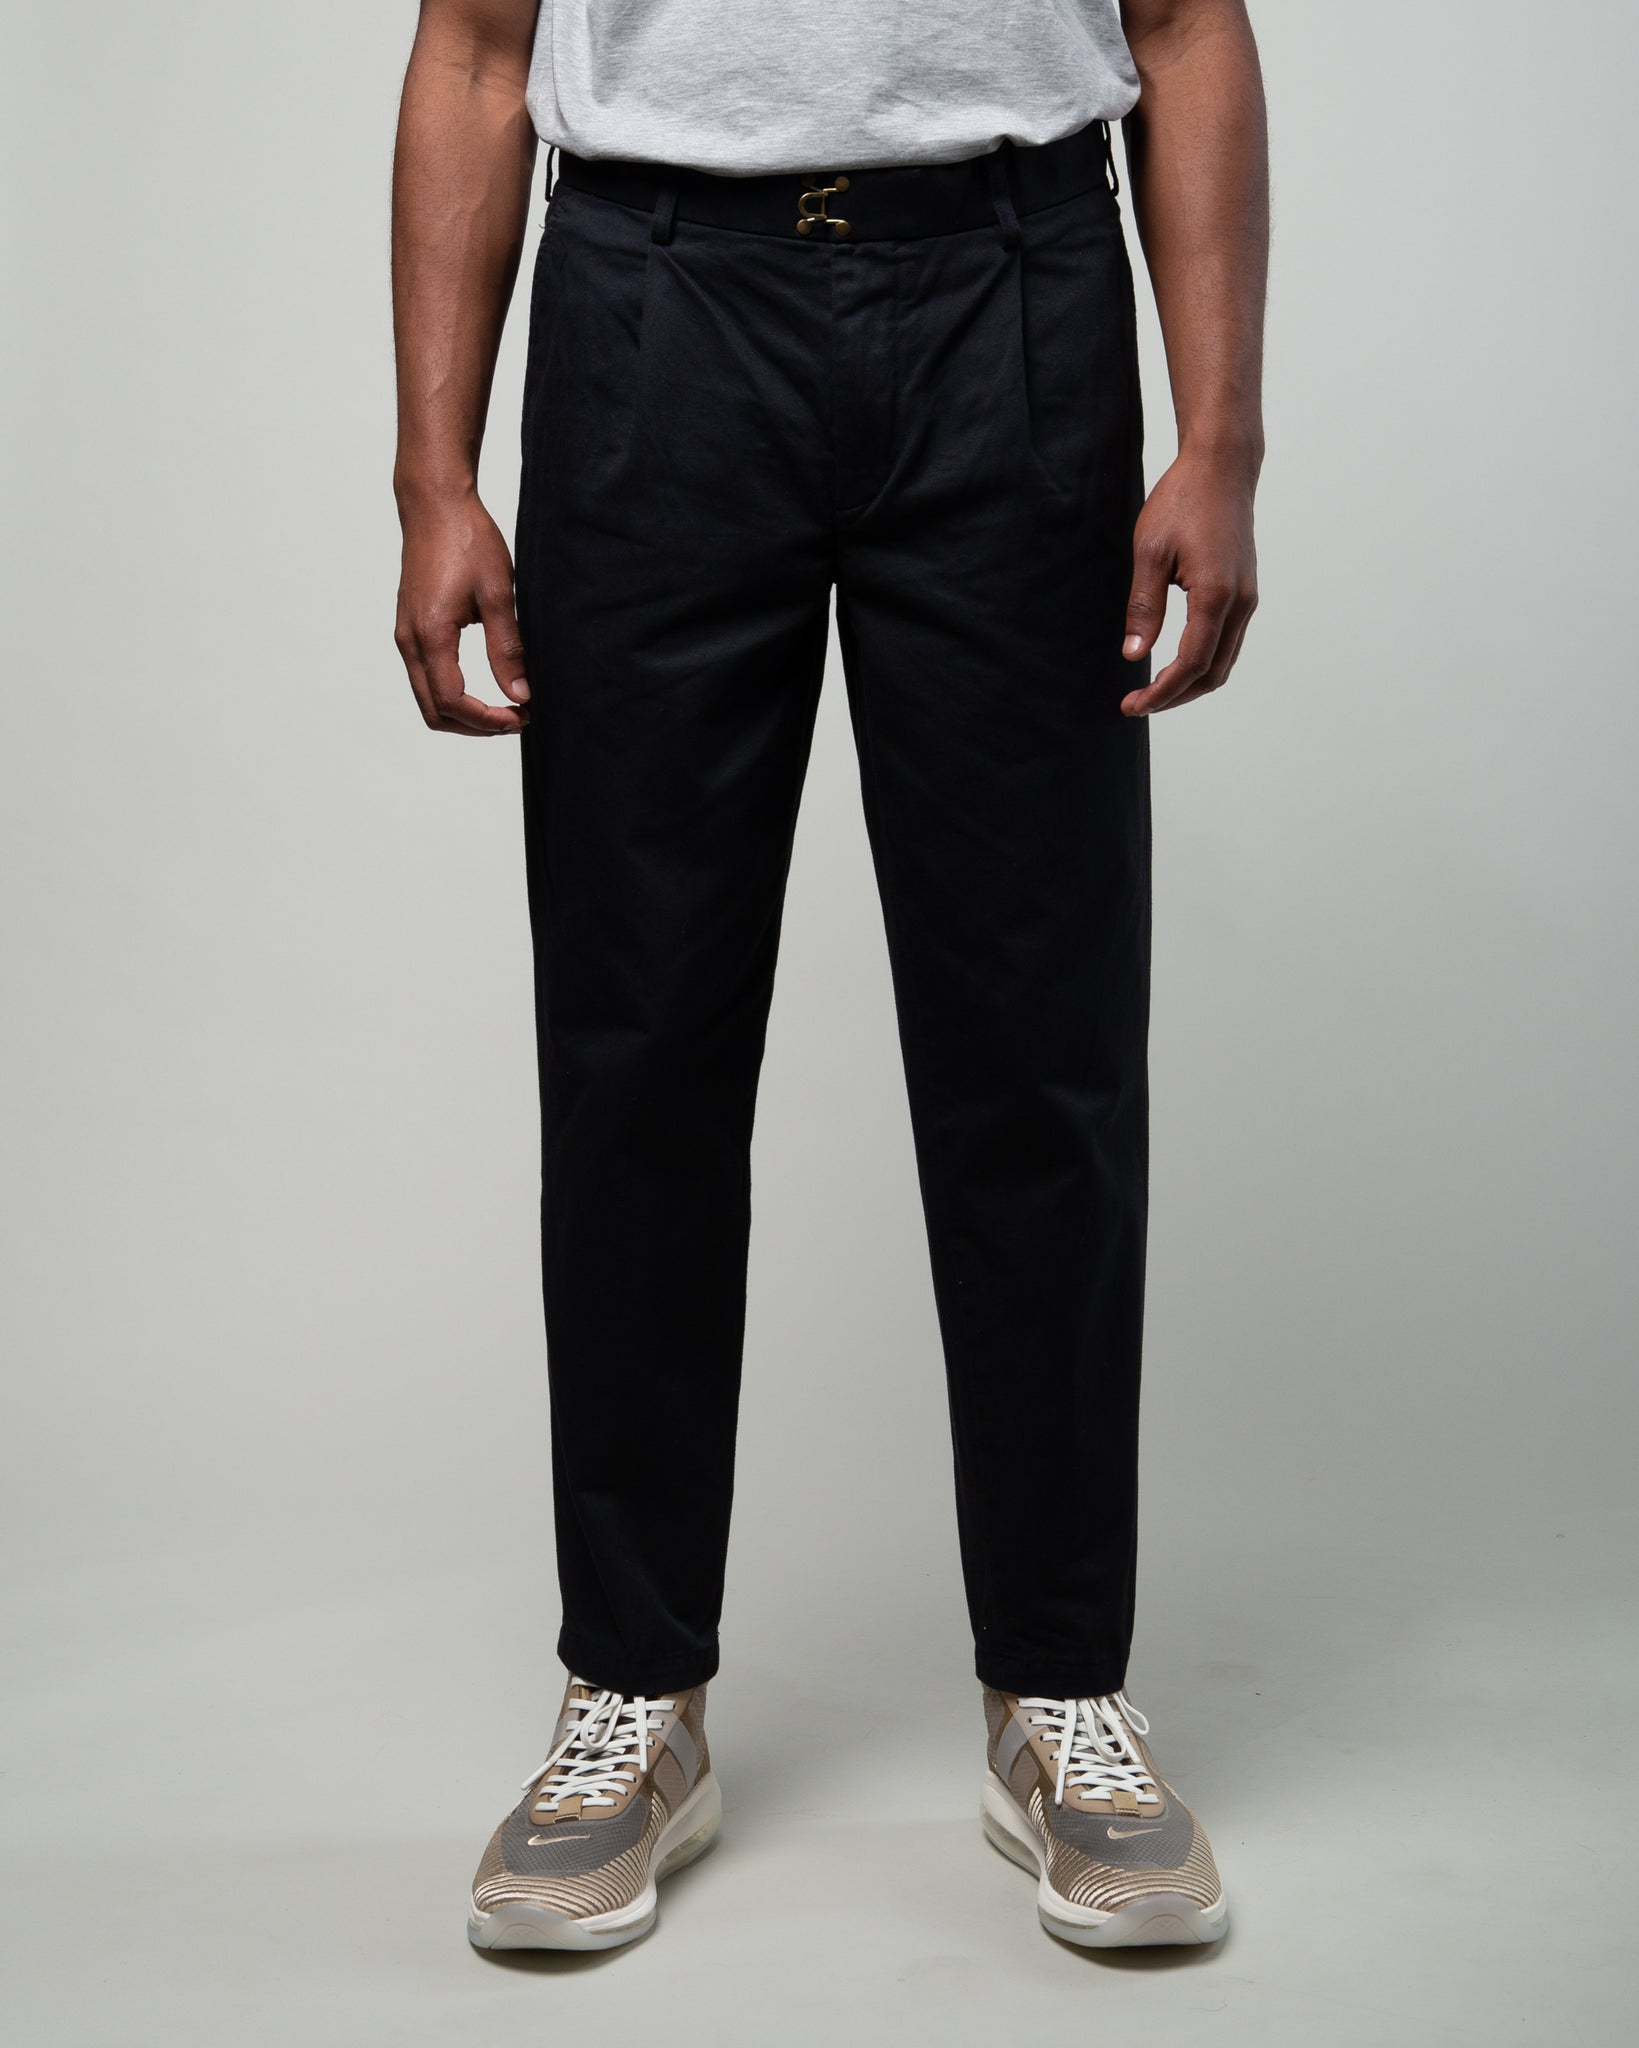 Cotton Twill One Tuck Pant Black